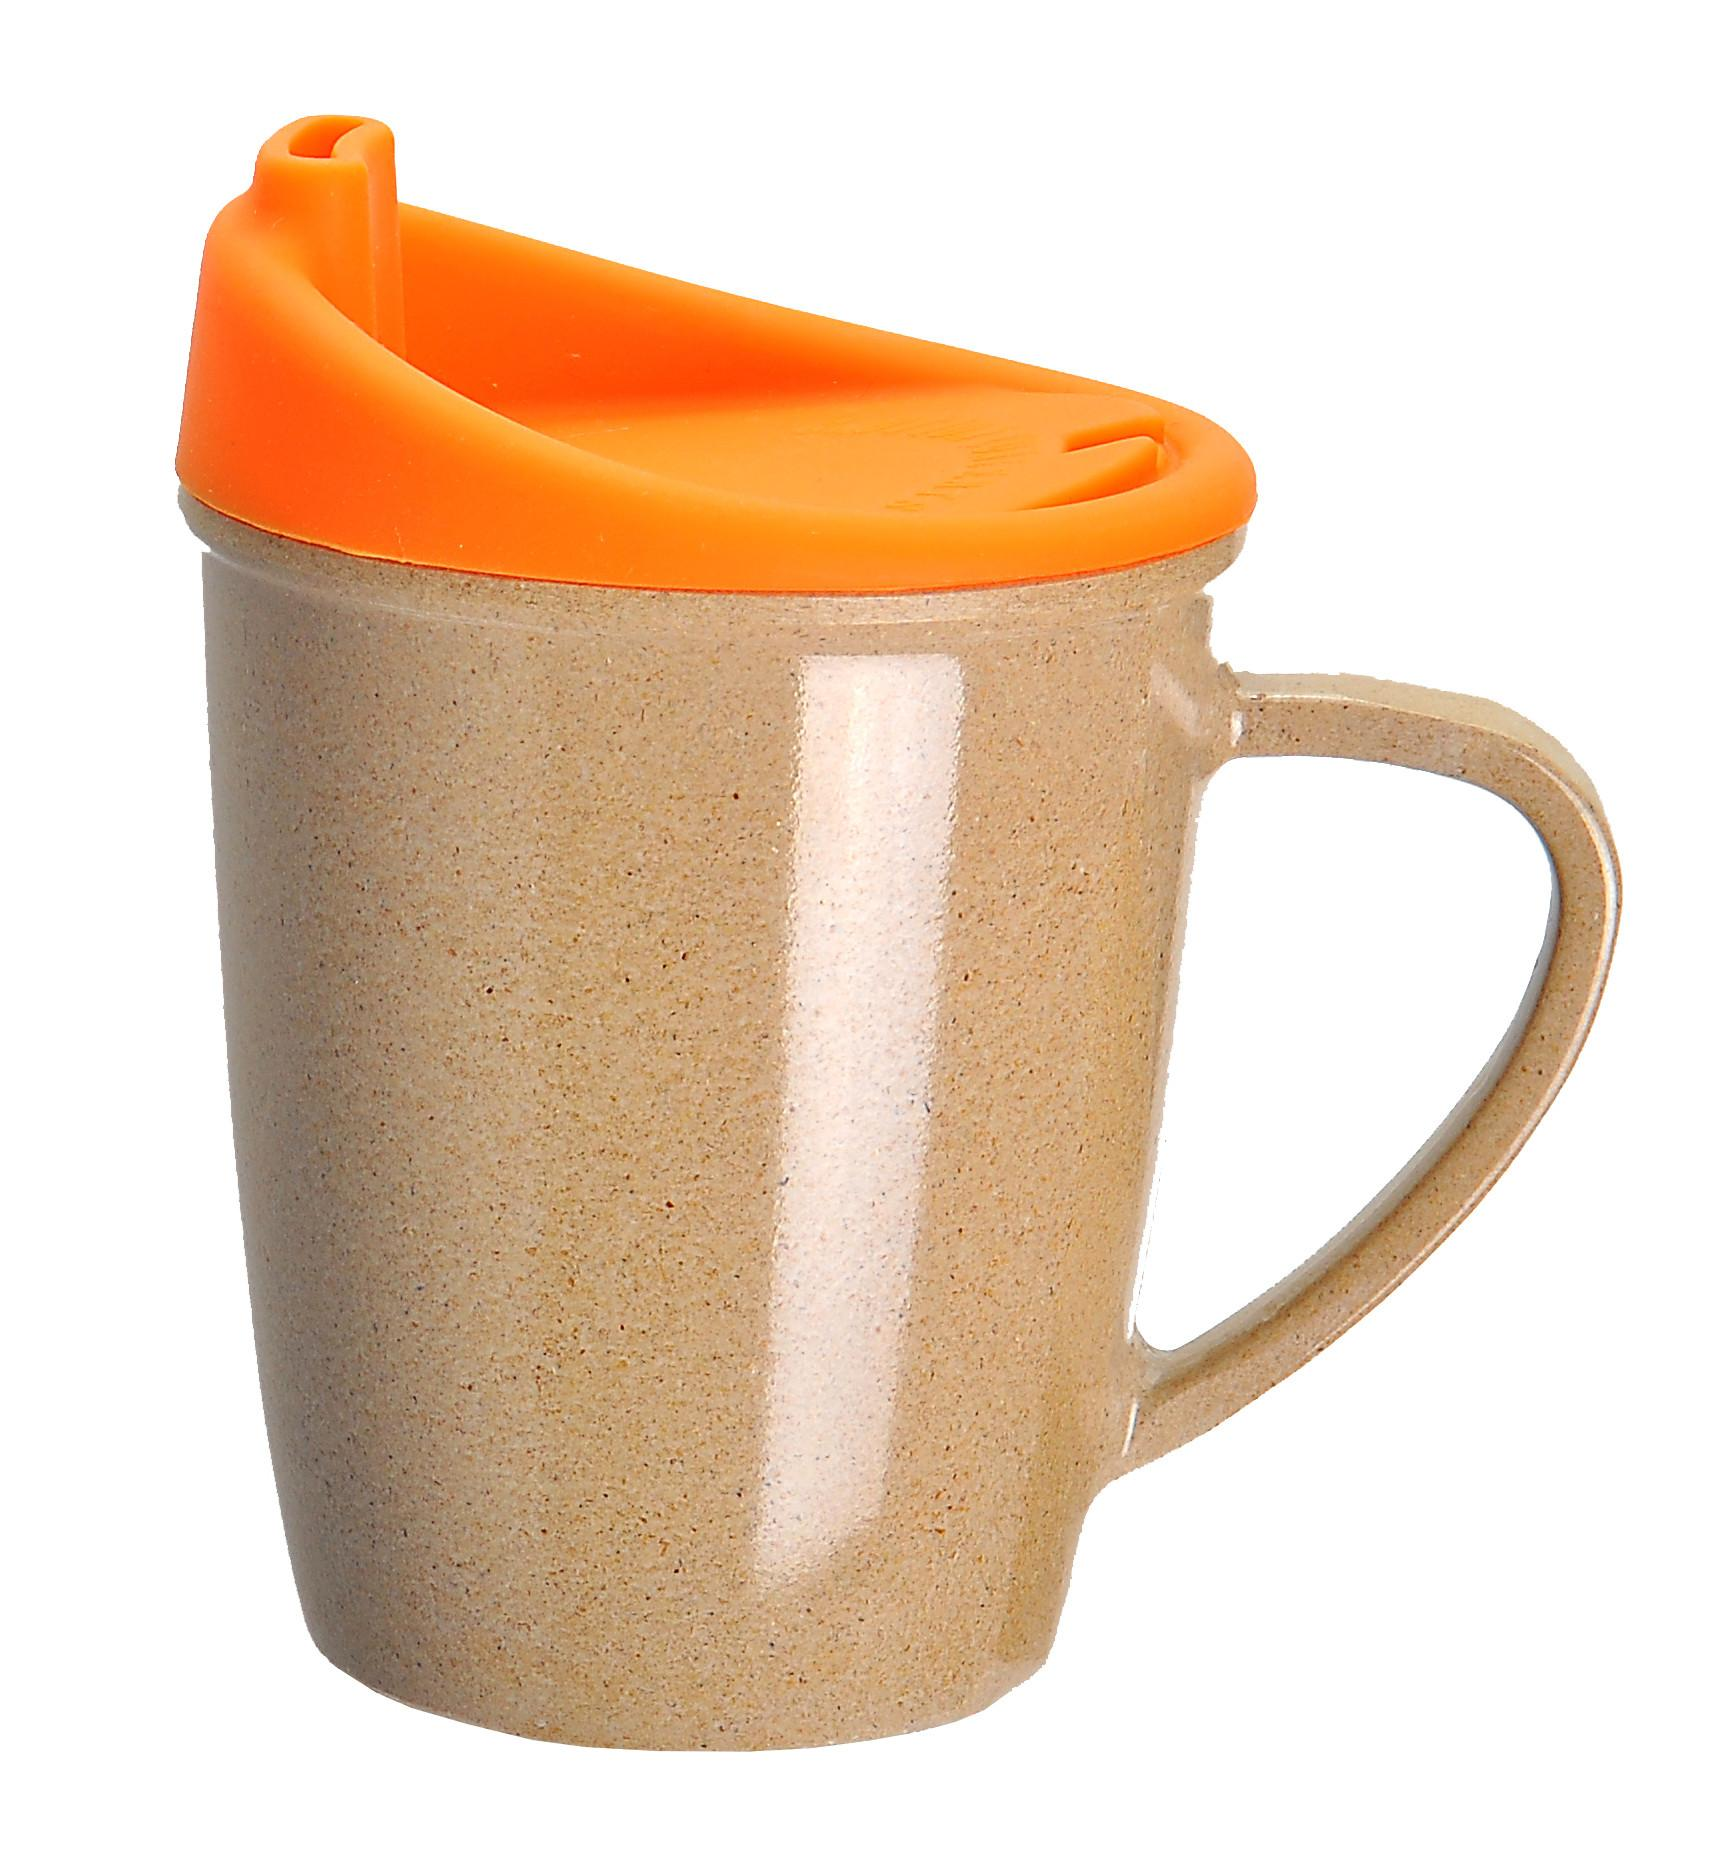 Olpro Orange Husk Baby Cup lowest price